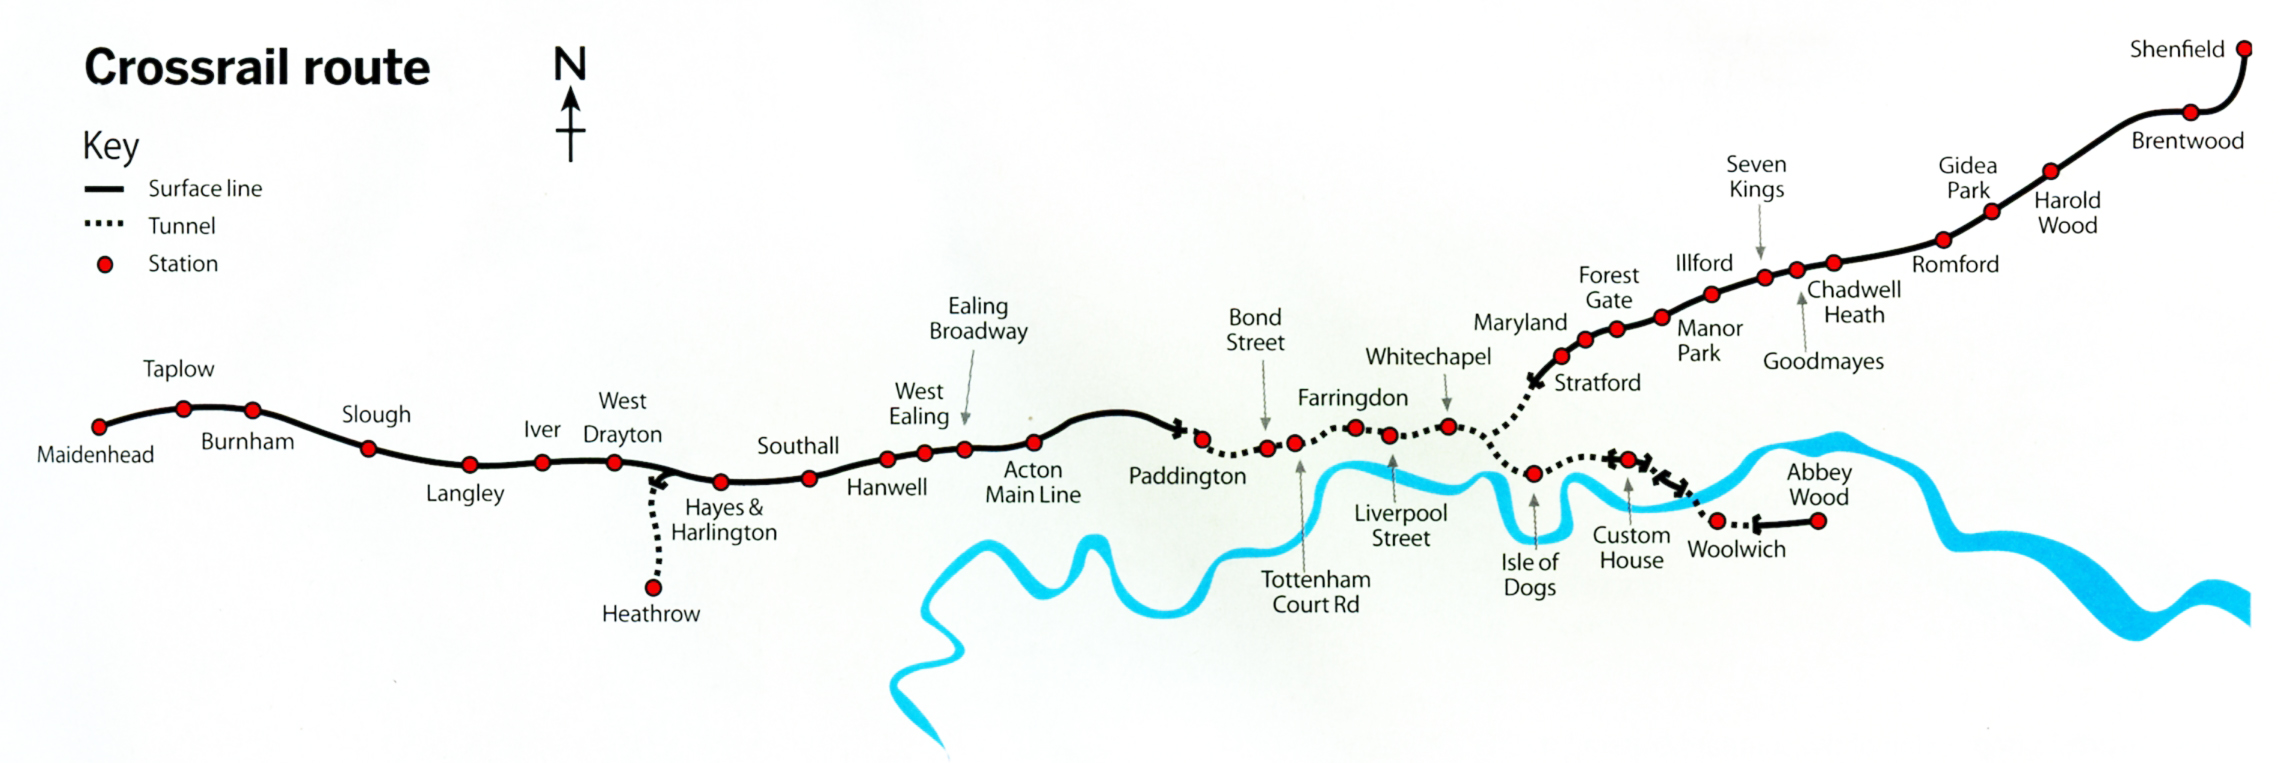 route mapping with Crossrail Maps on Explosion Gail Pipeline Andhra Pradesh also Docklandslightra moreover Spotlight On Digital Capabilities Ii Developing Student Digital Capabilities in addition Hollanddutchtrai as well 3786291.